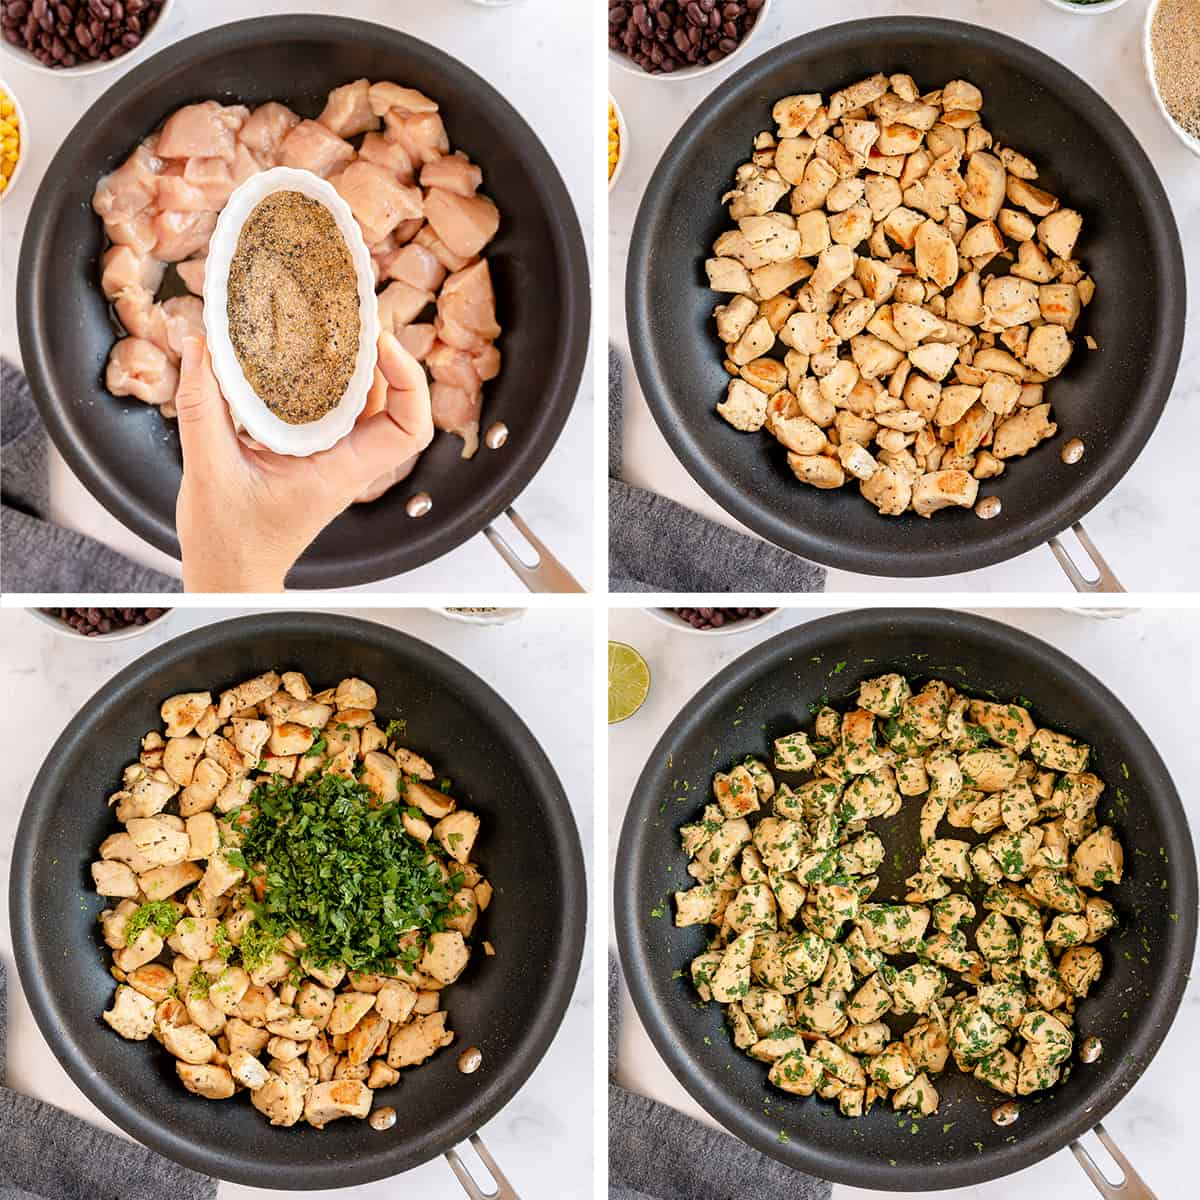 Chicken, seasonings, and cilantro cooking in a skillet.